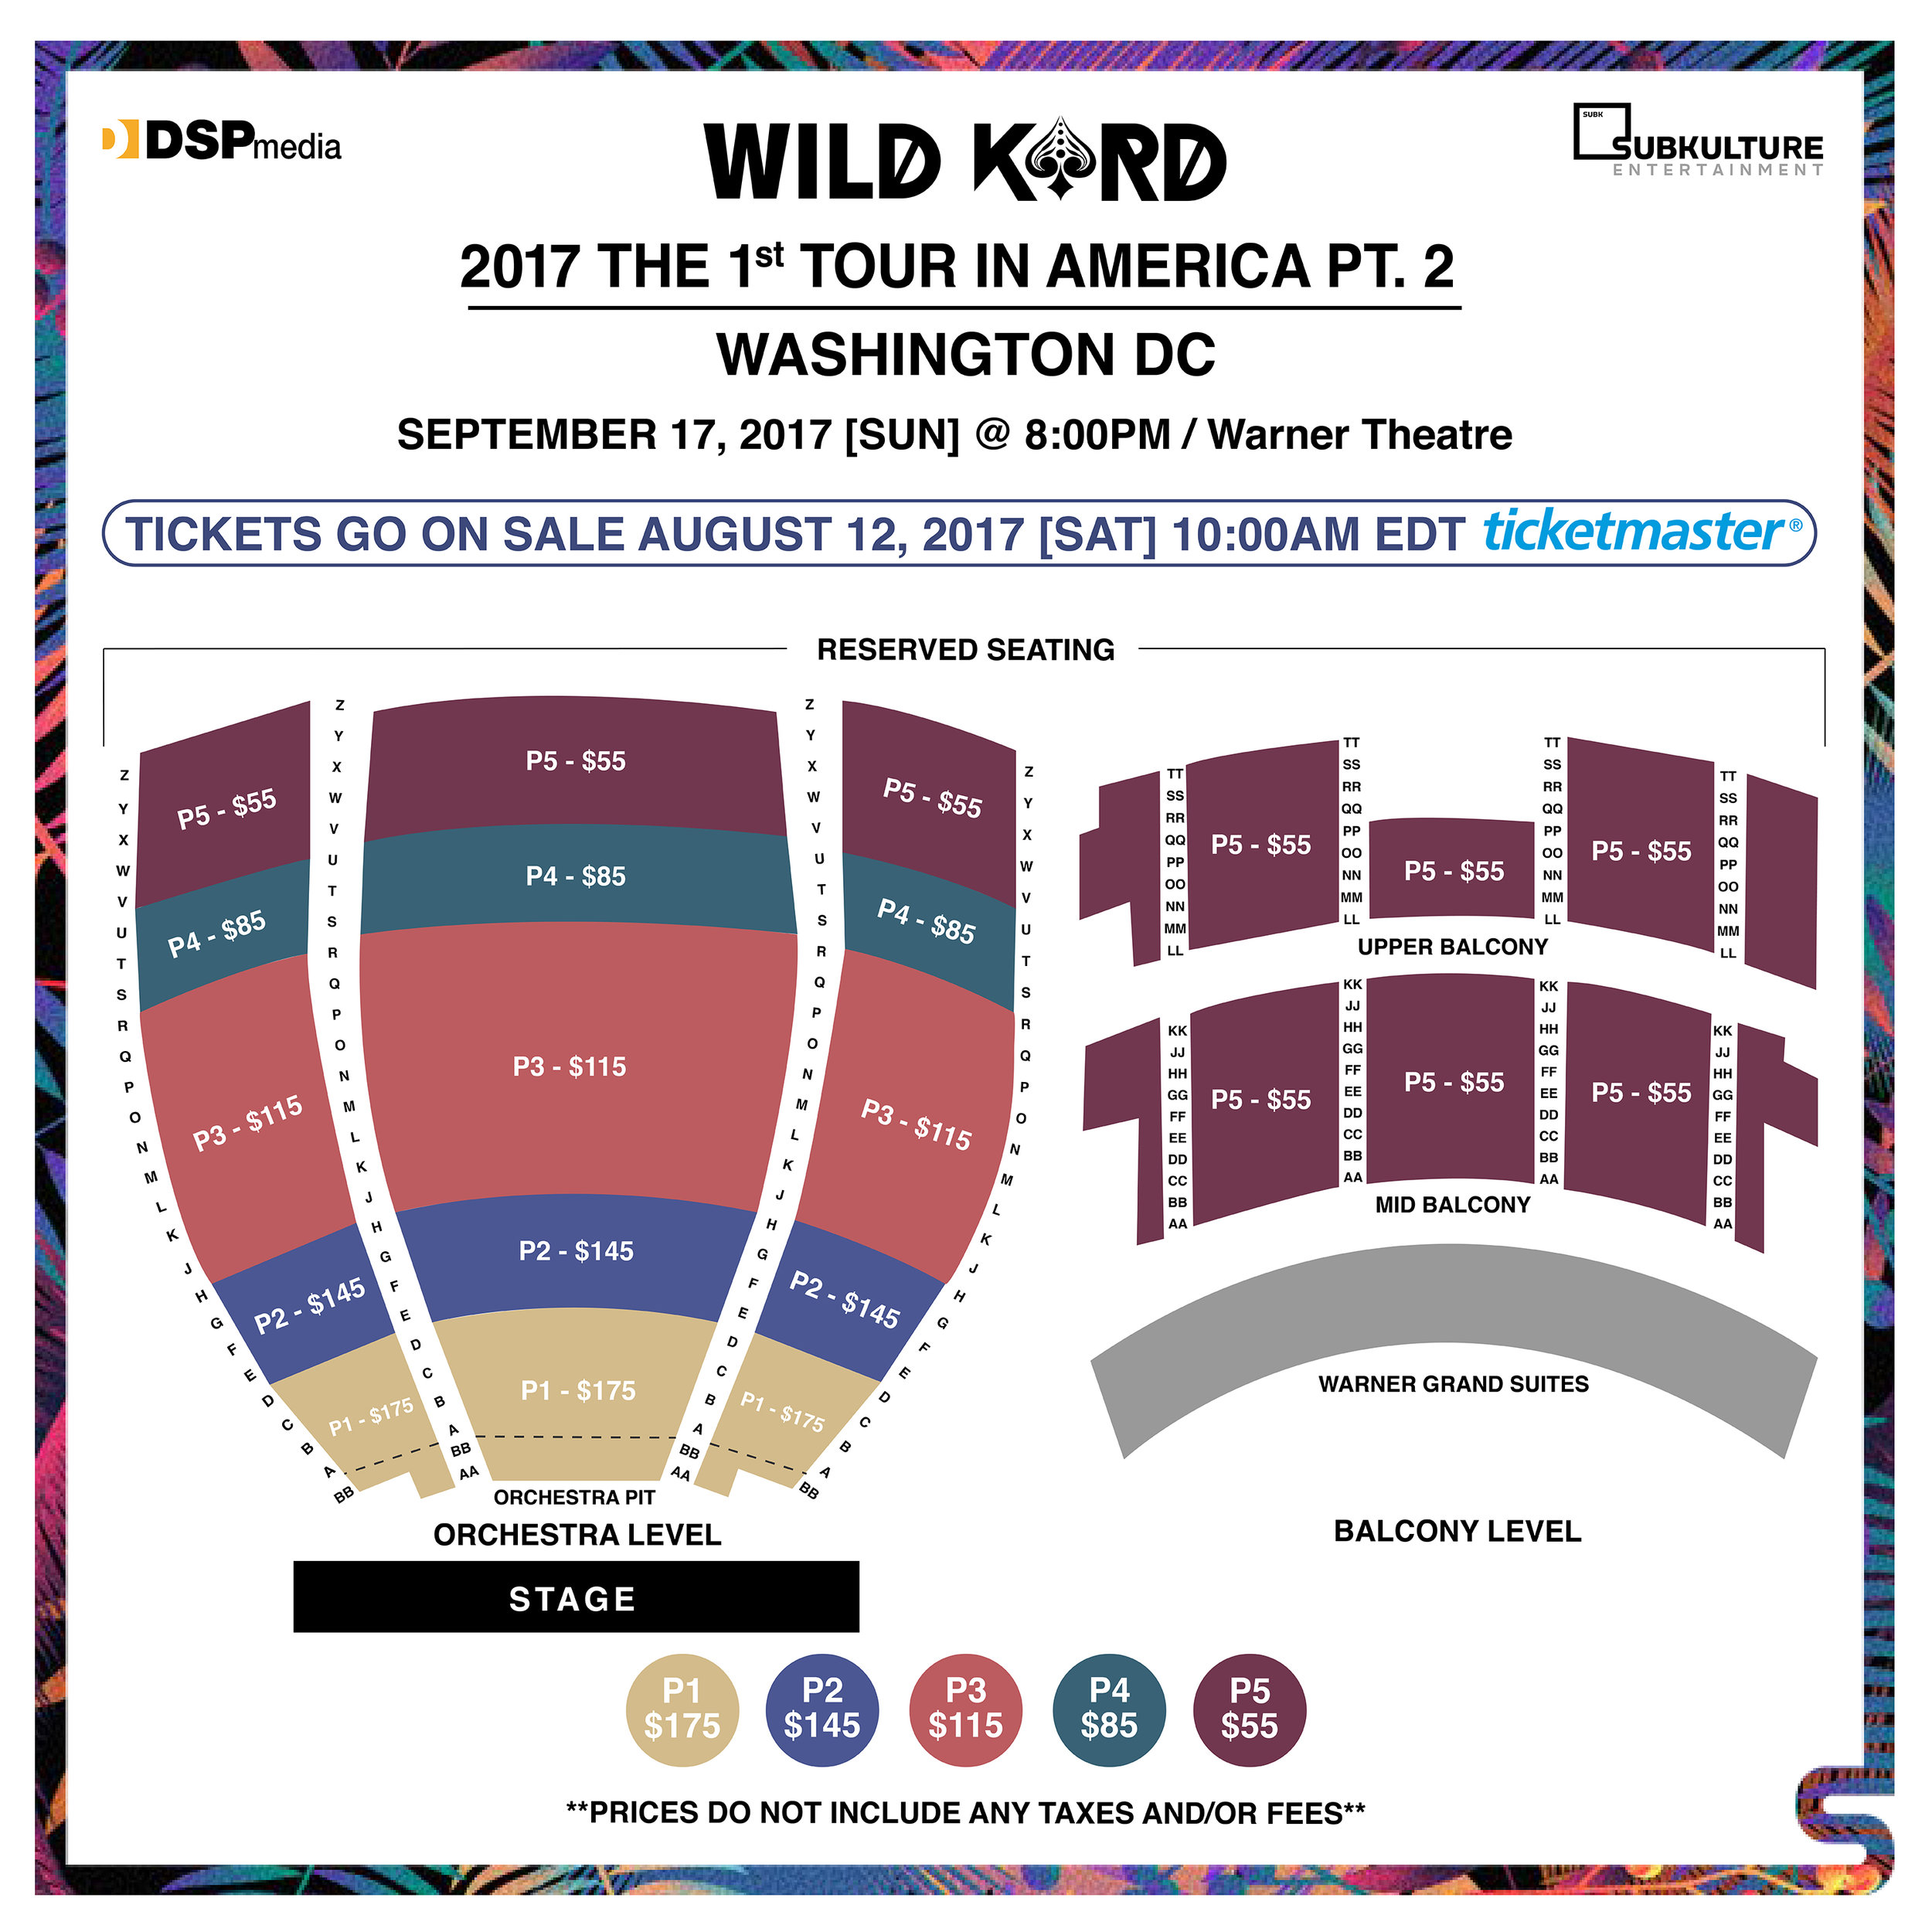 Kard Dc Seatingchart Jpg